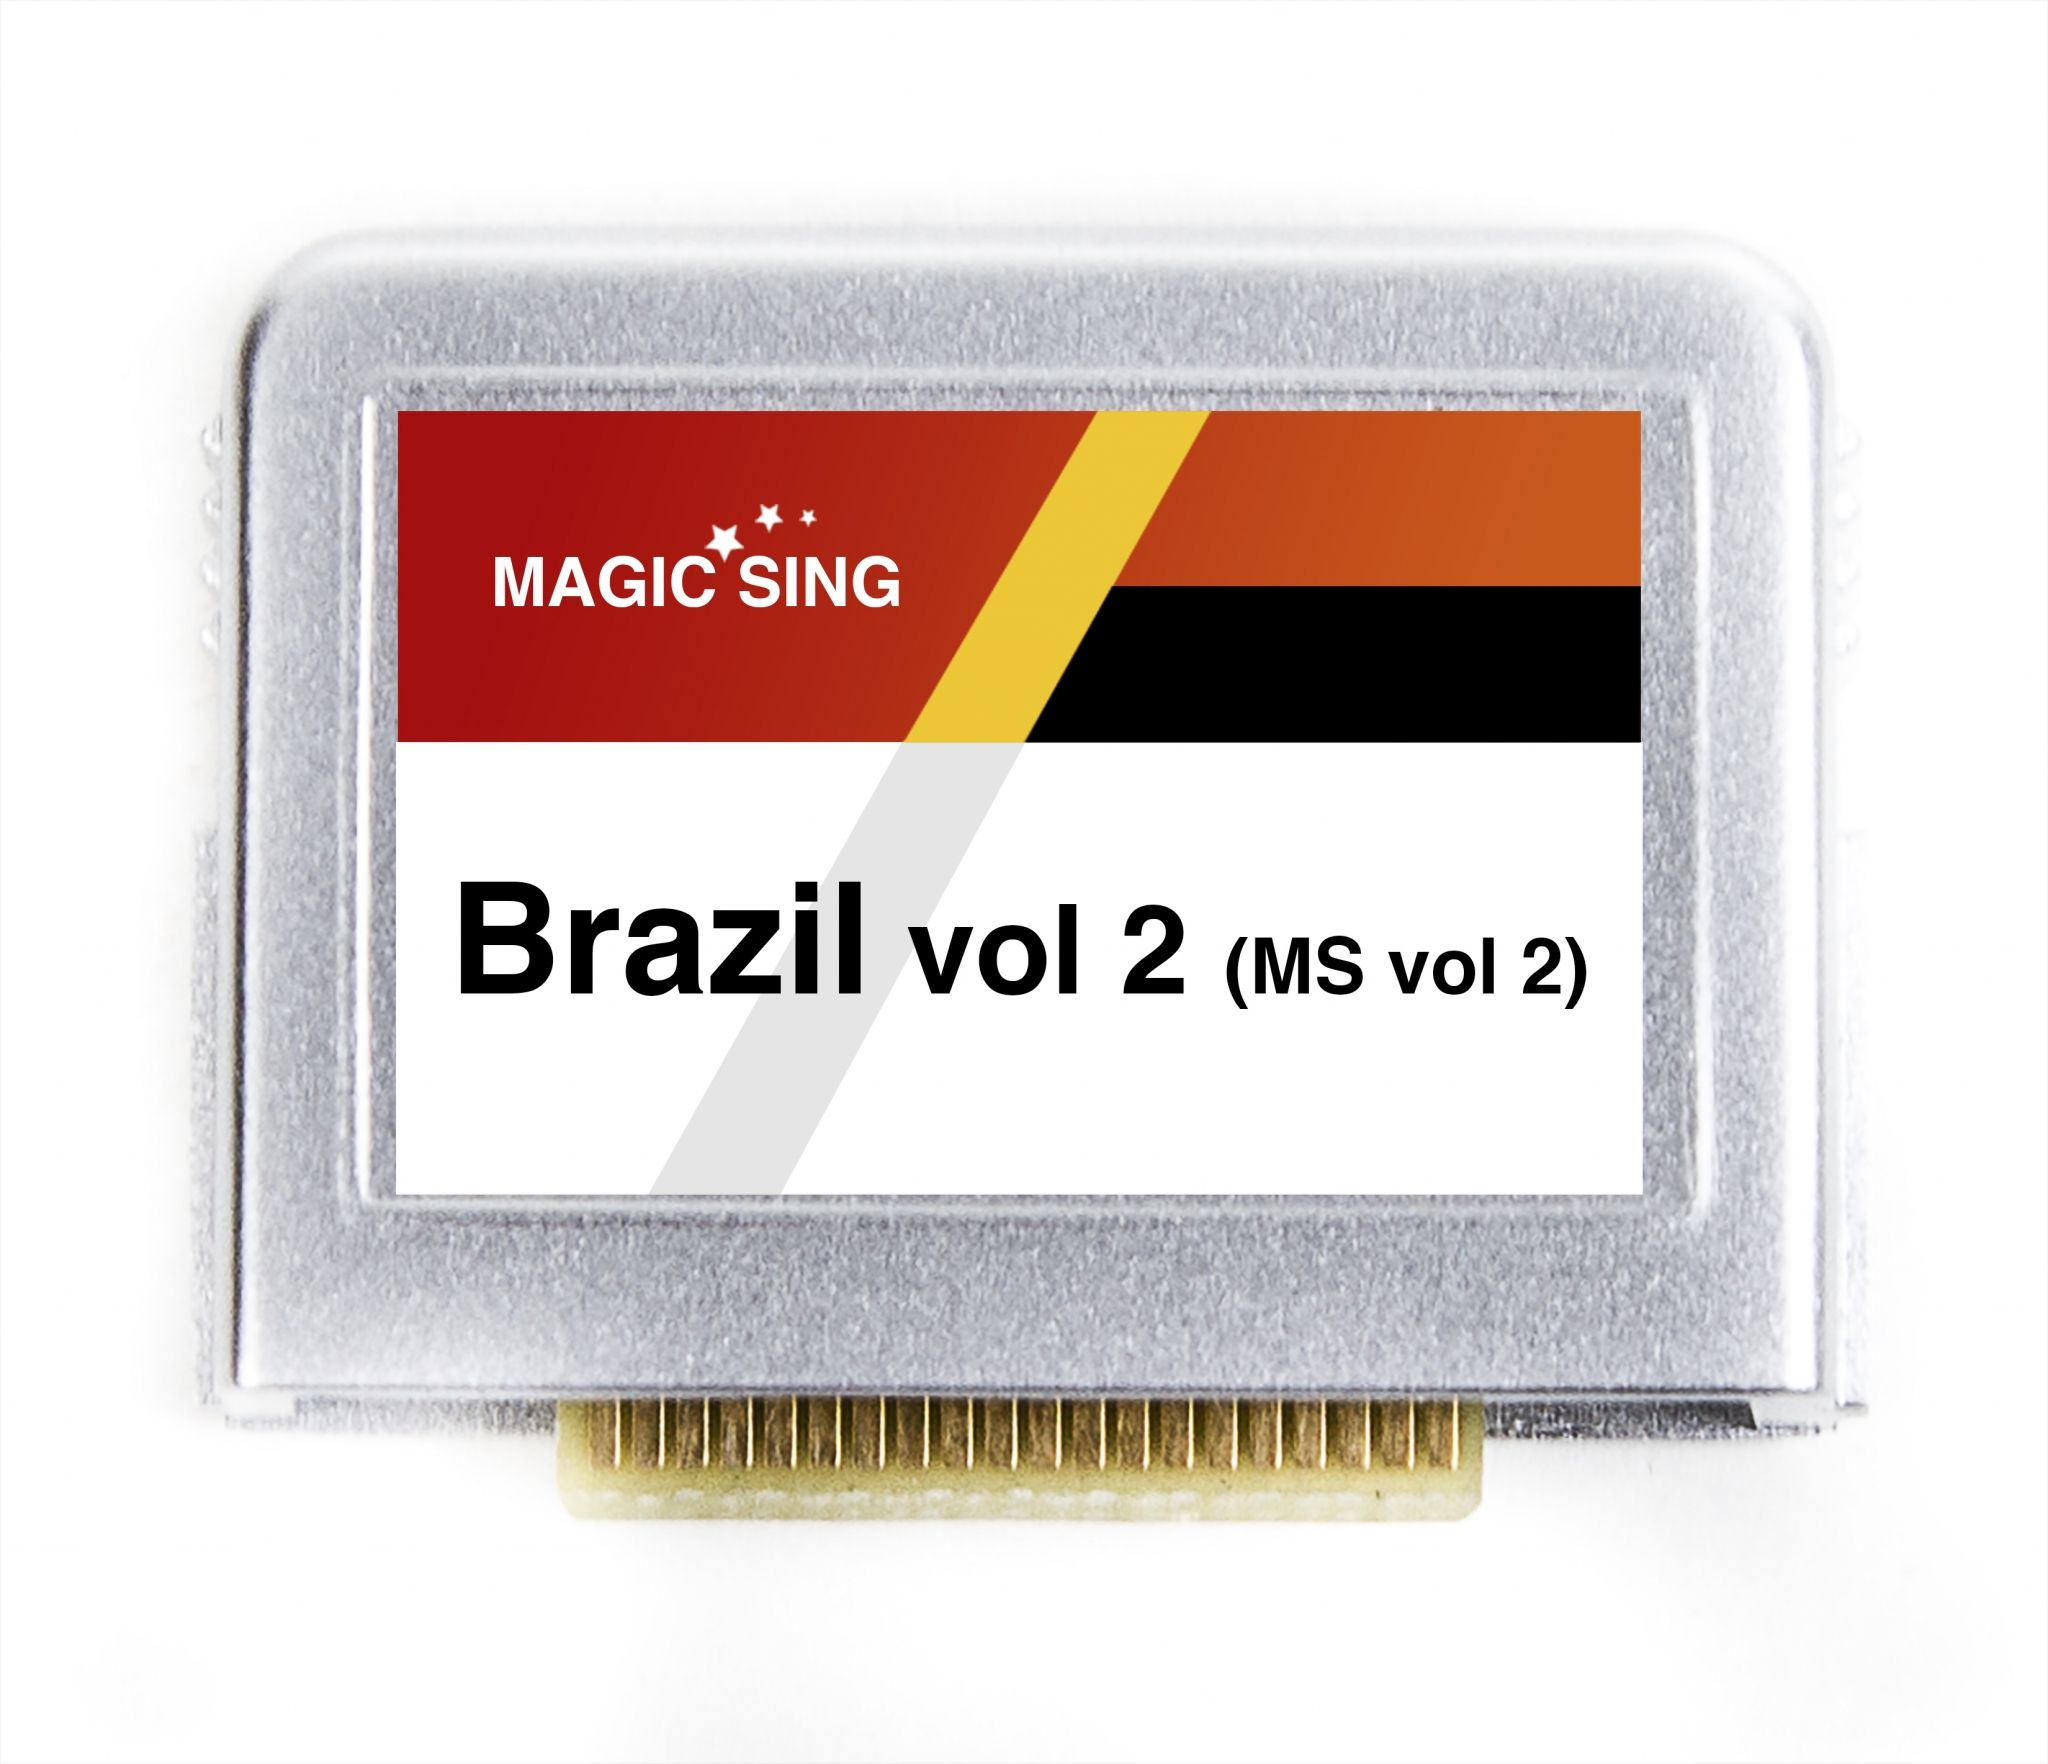 Brazil vol.2 (Brazilian)(MS vol.2) 150 songs